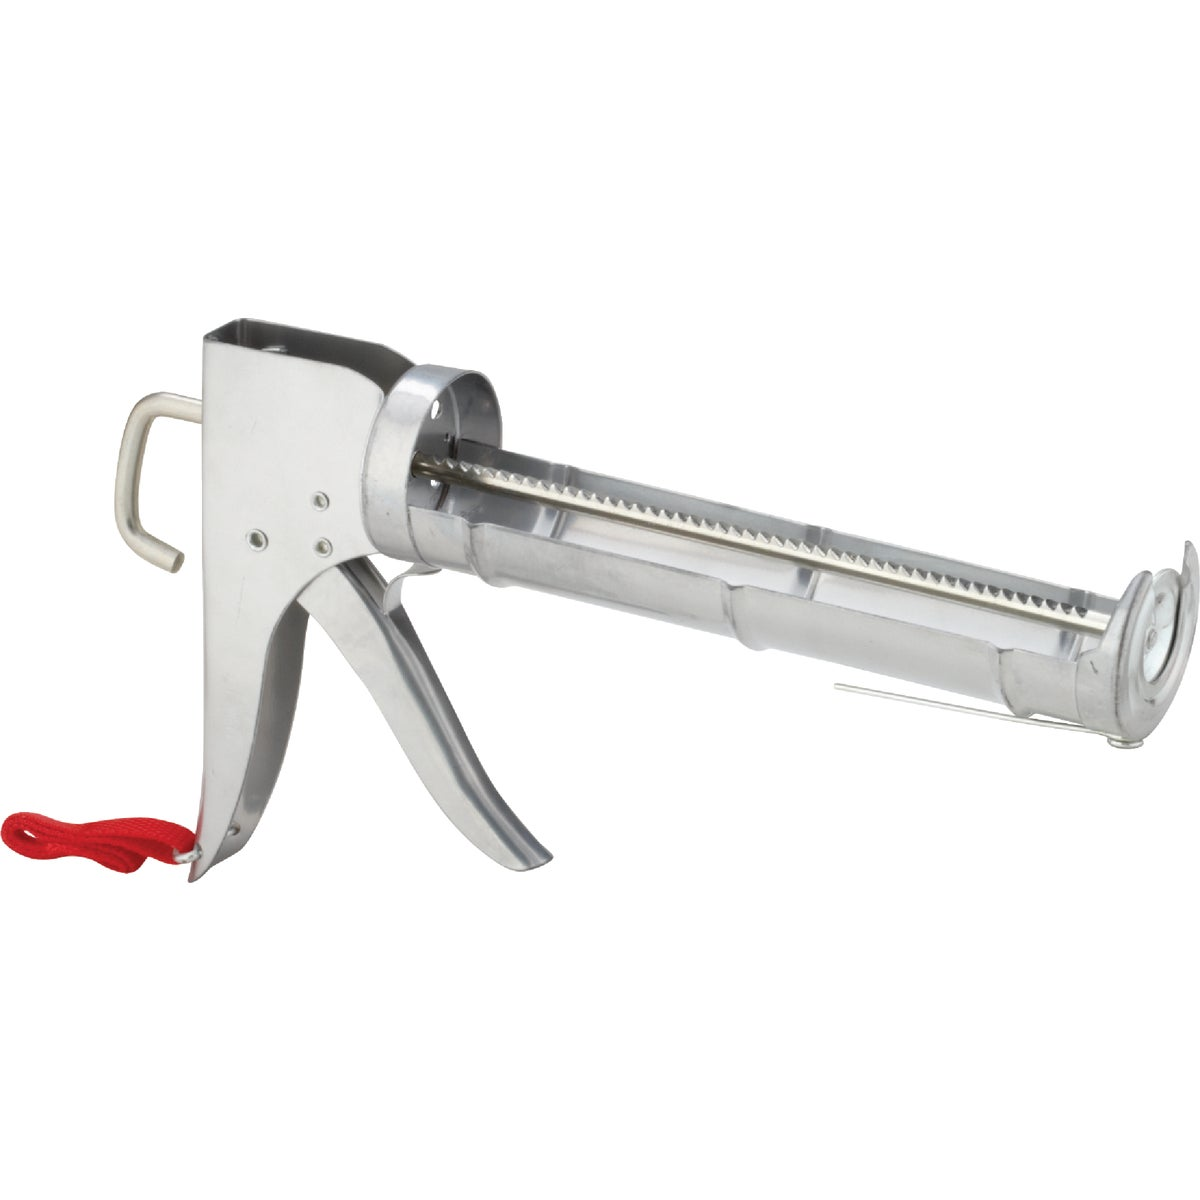 10OZ PRO CRADL CAULK GUN - YD-117Q by Do it Best